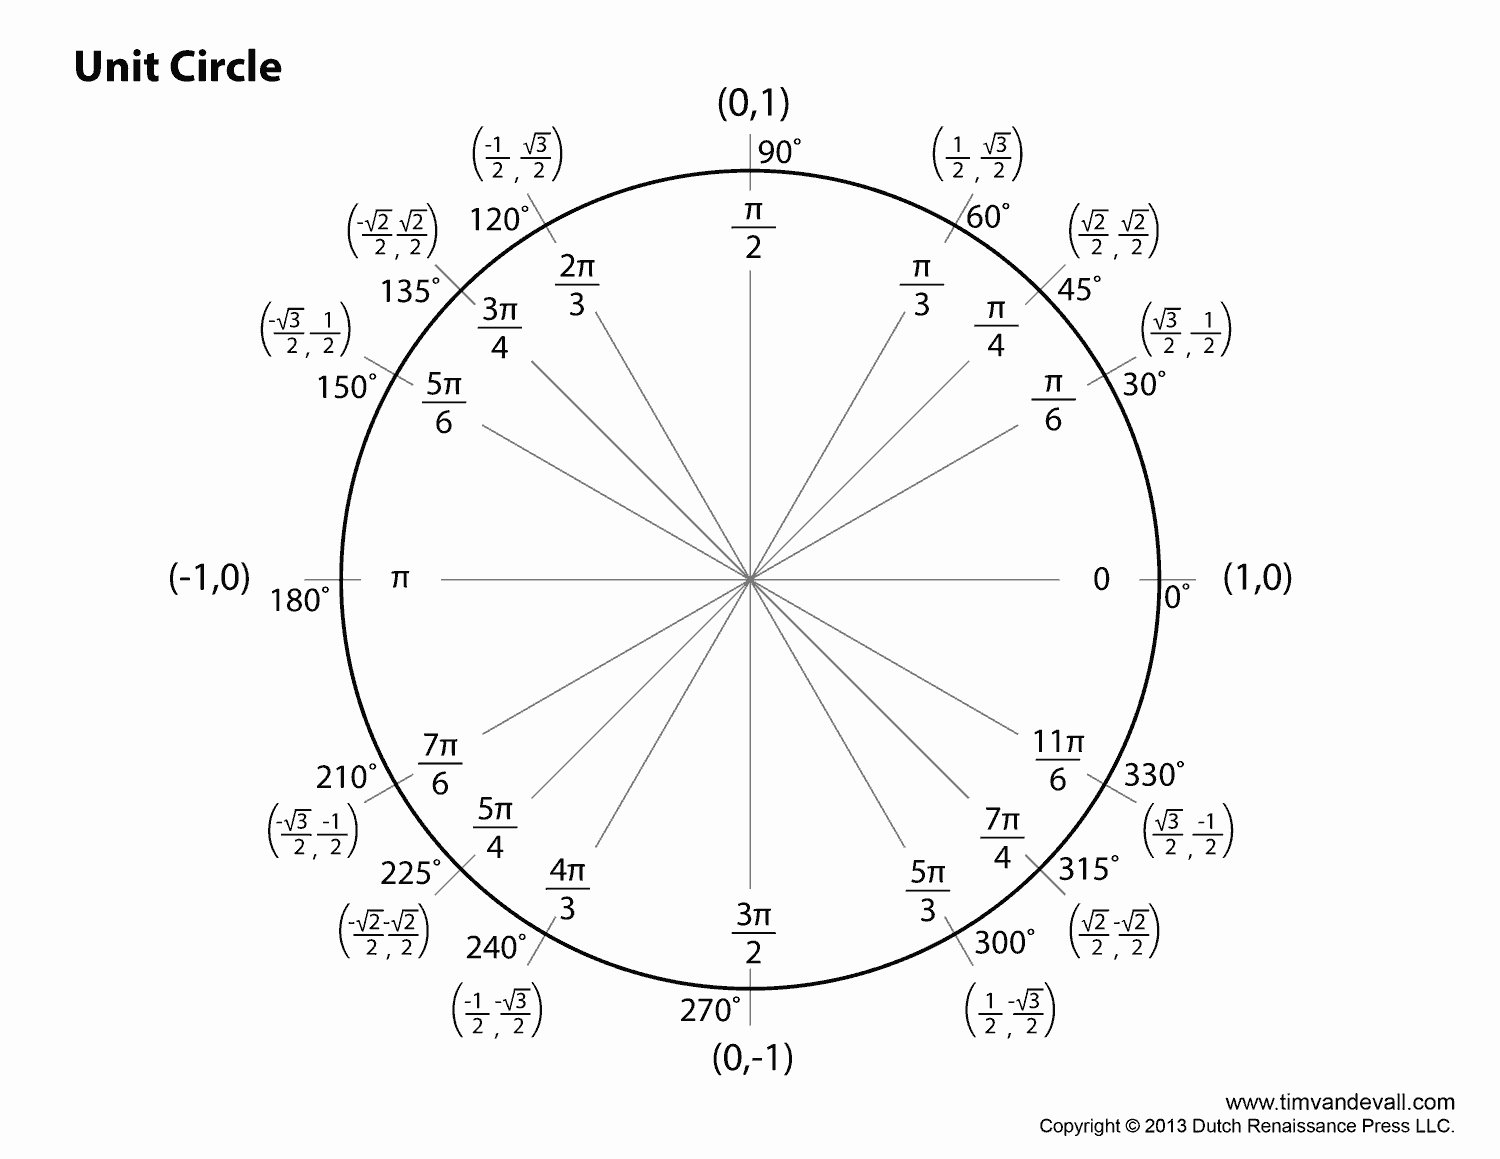 Blank Unit Circle Pdf Elegant Best S Of Unit Circle Blank Print Outs Printable Blank Unit Circle Blank Unit Circle